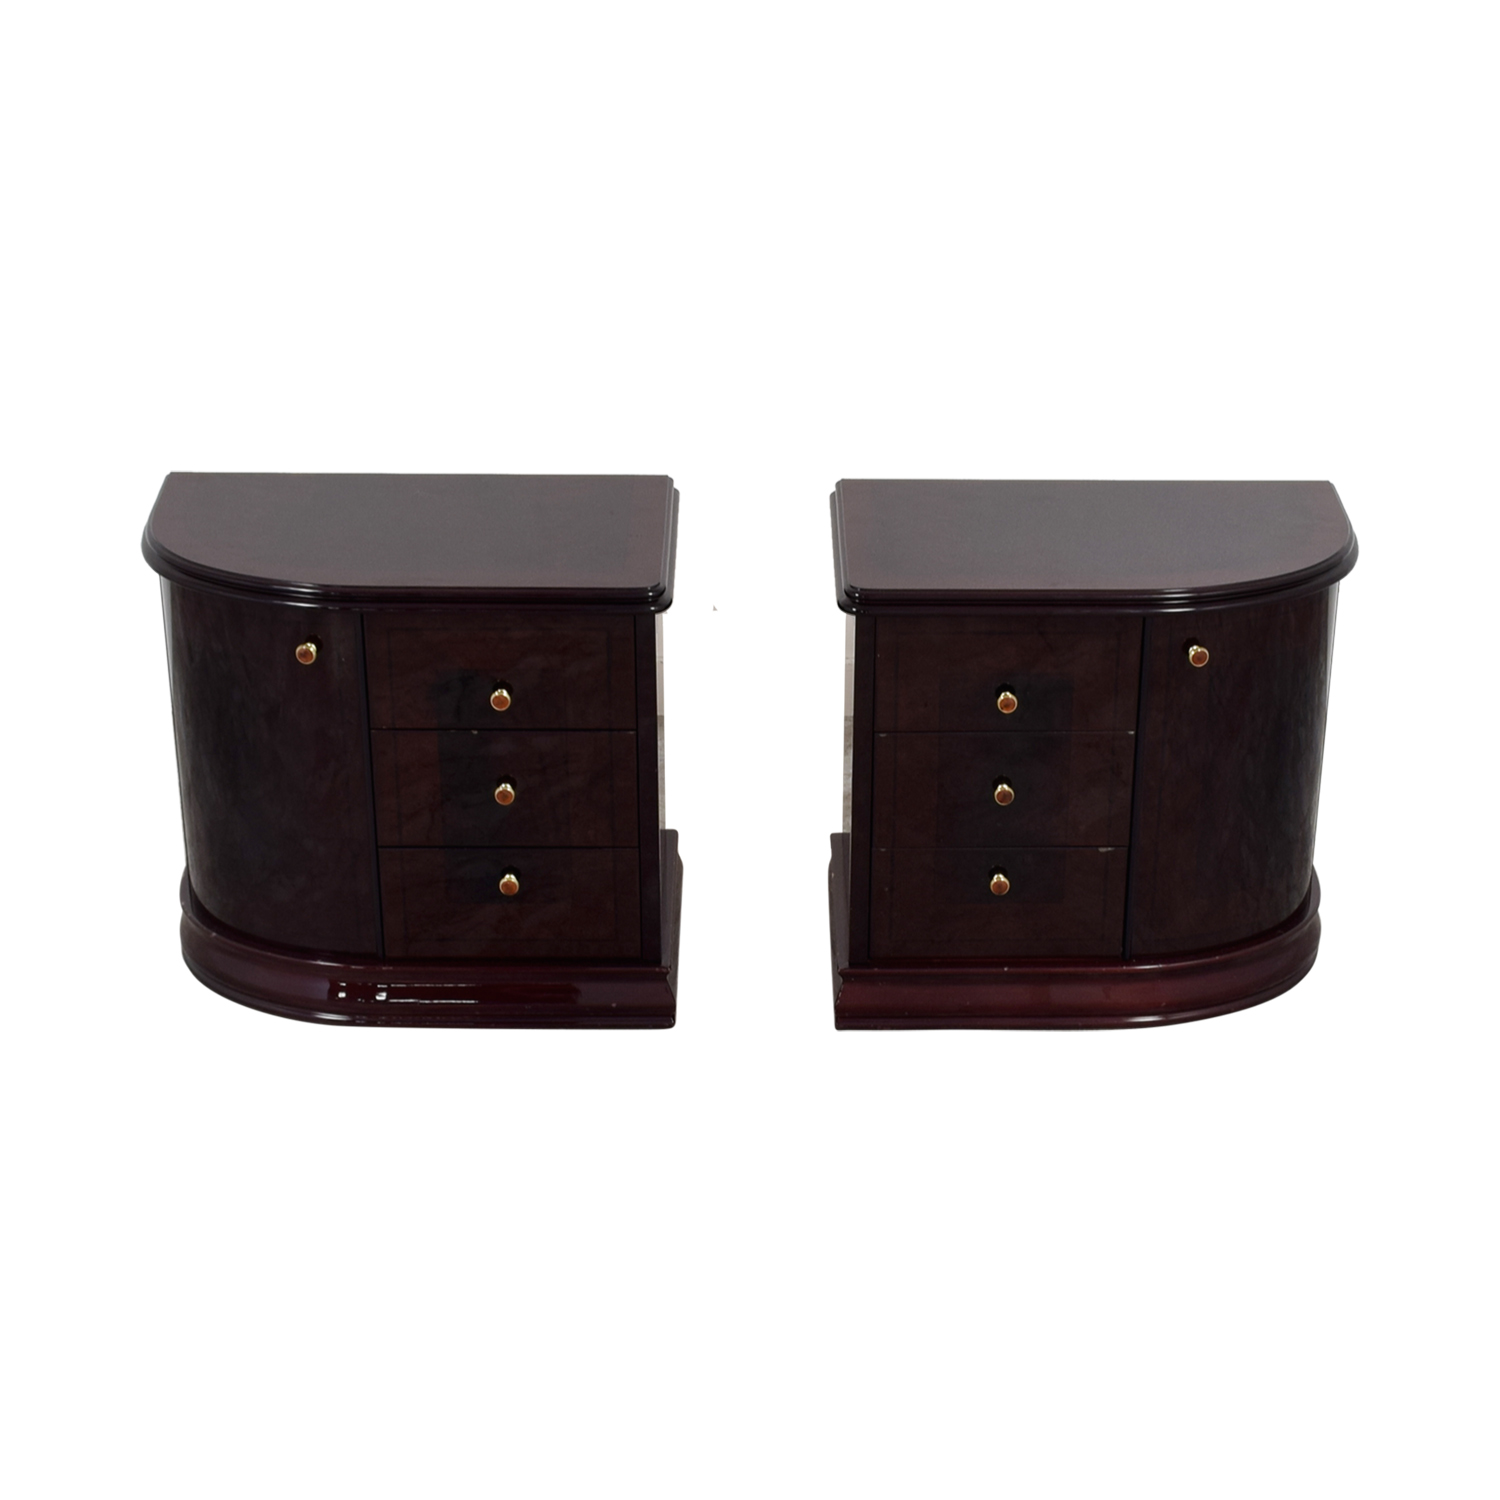 buy Curvo Camere Brown Nightstands Curvo Camere Sofas